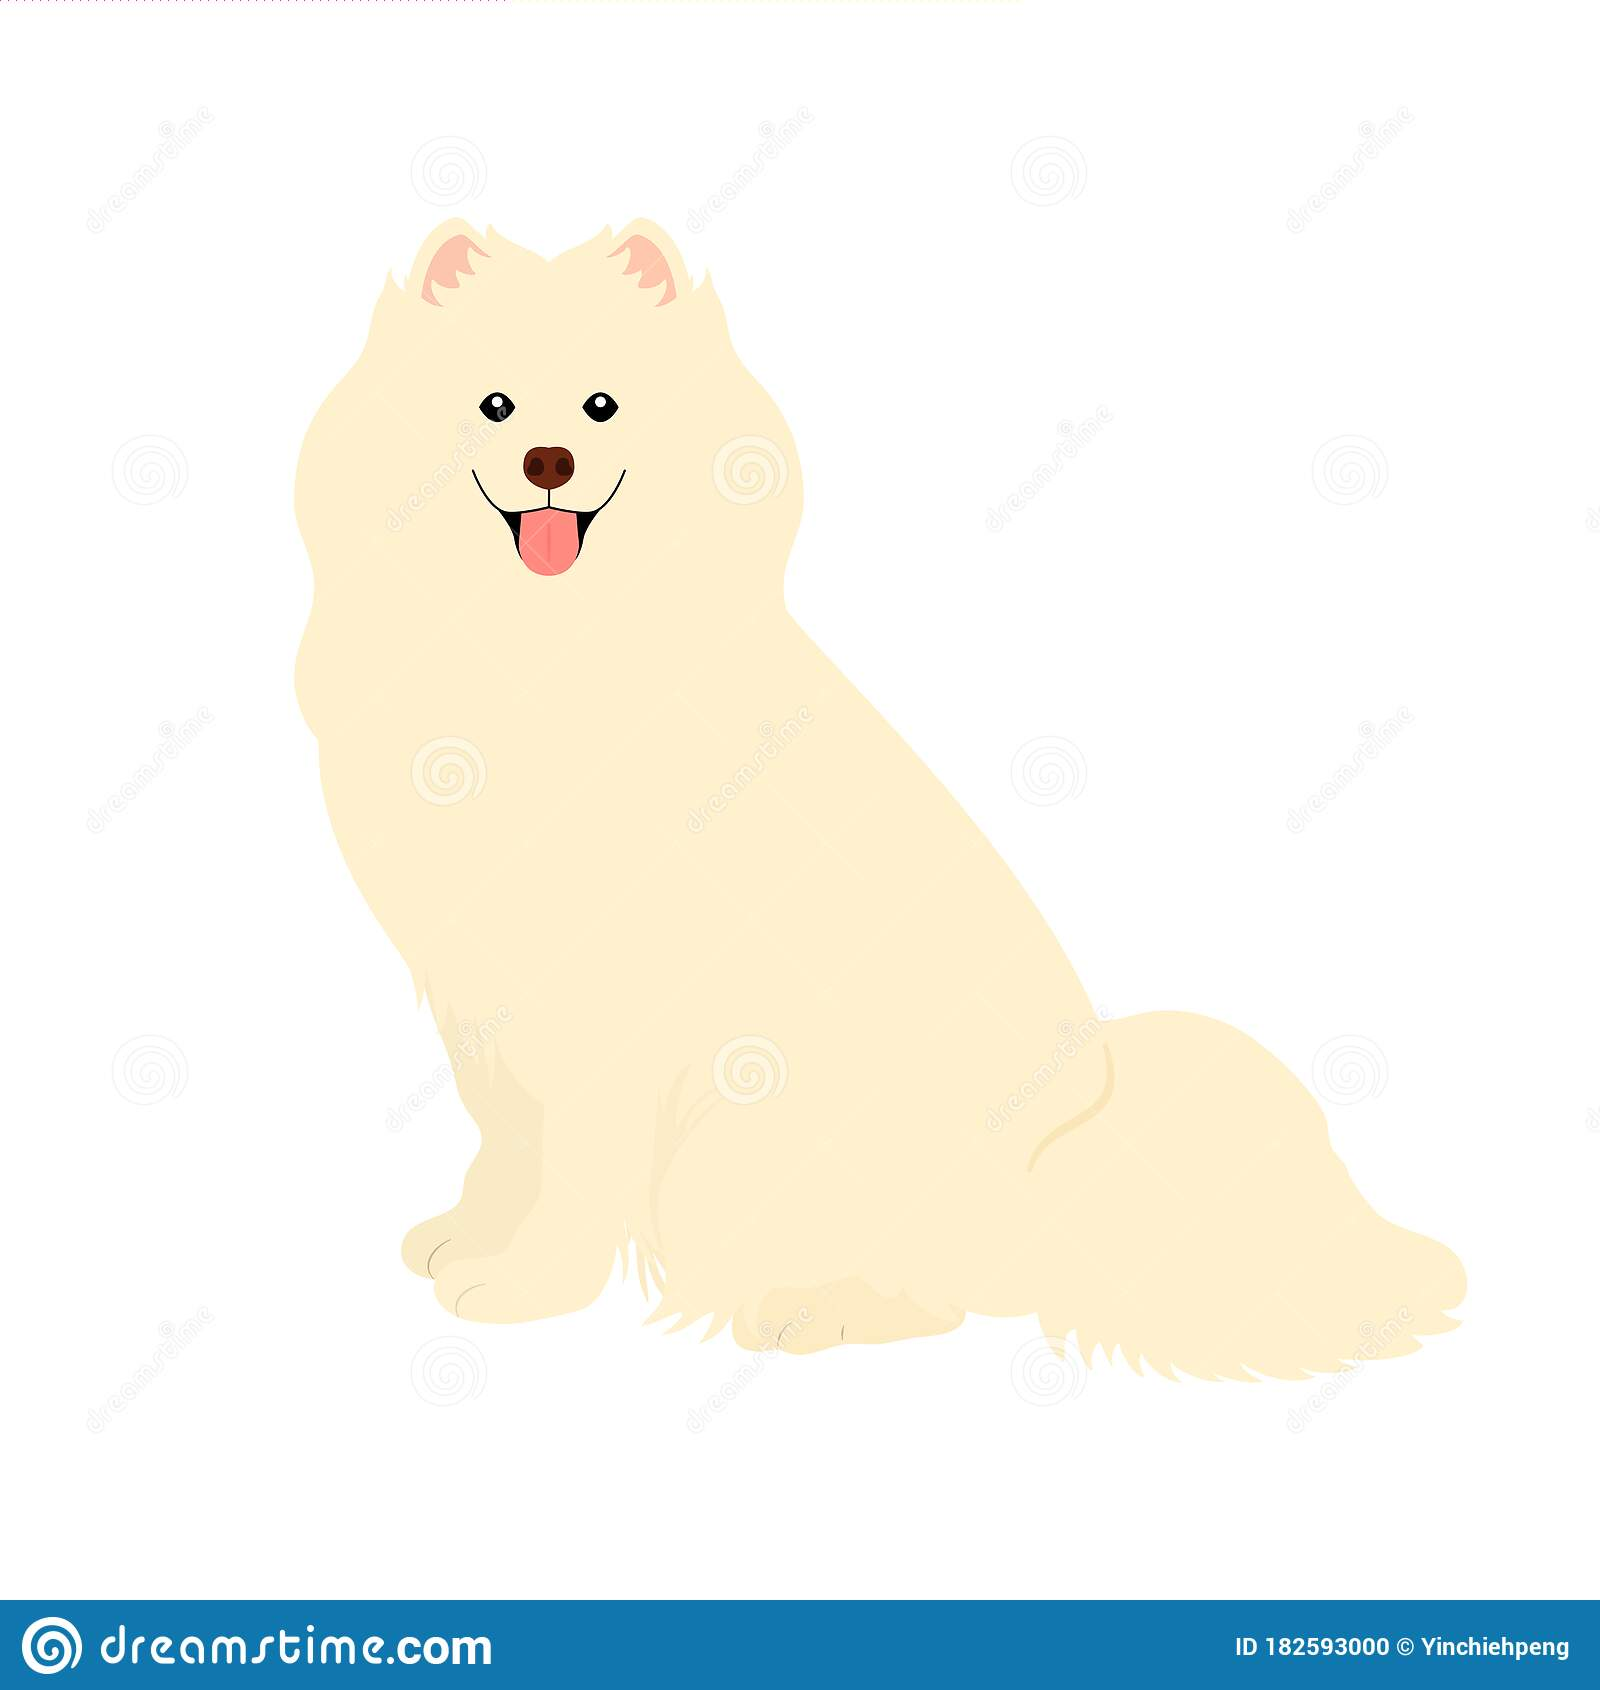 Samoyed Dog Isolated On White Background Cartoon Dog Puppy Icon Vector Hand Drawn Childish Vector Illustration Great For Icon Stock Vector Illustration Of Funny Cartoon 182593000